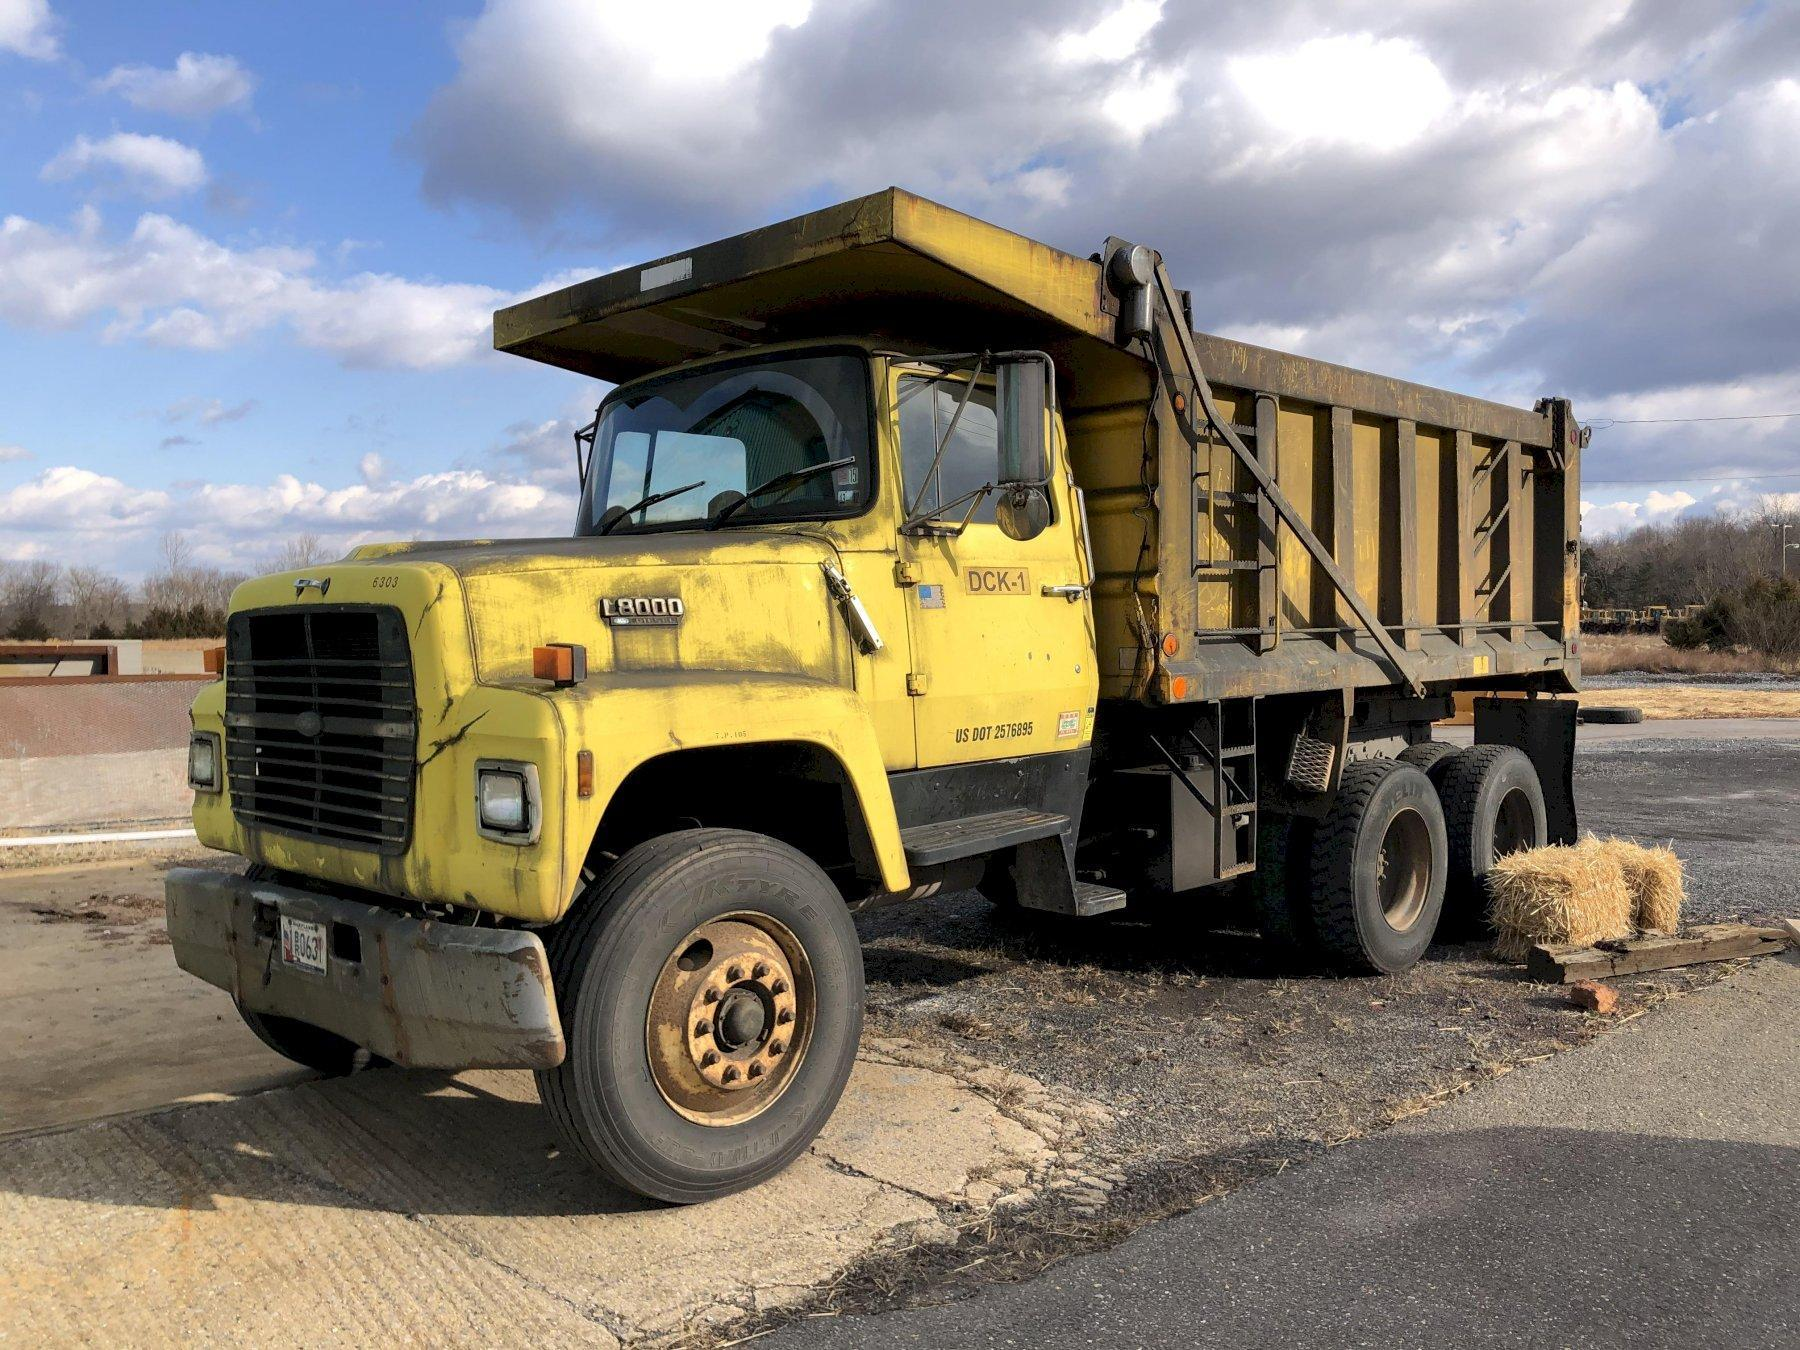 Ford 8000 diesel powered dump truck vin# 1fdyu82a7kva53145 with 15' dump body, 73475 miles